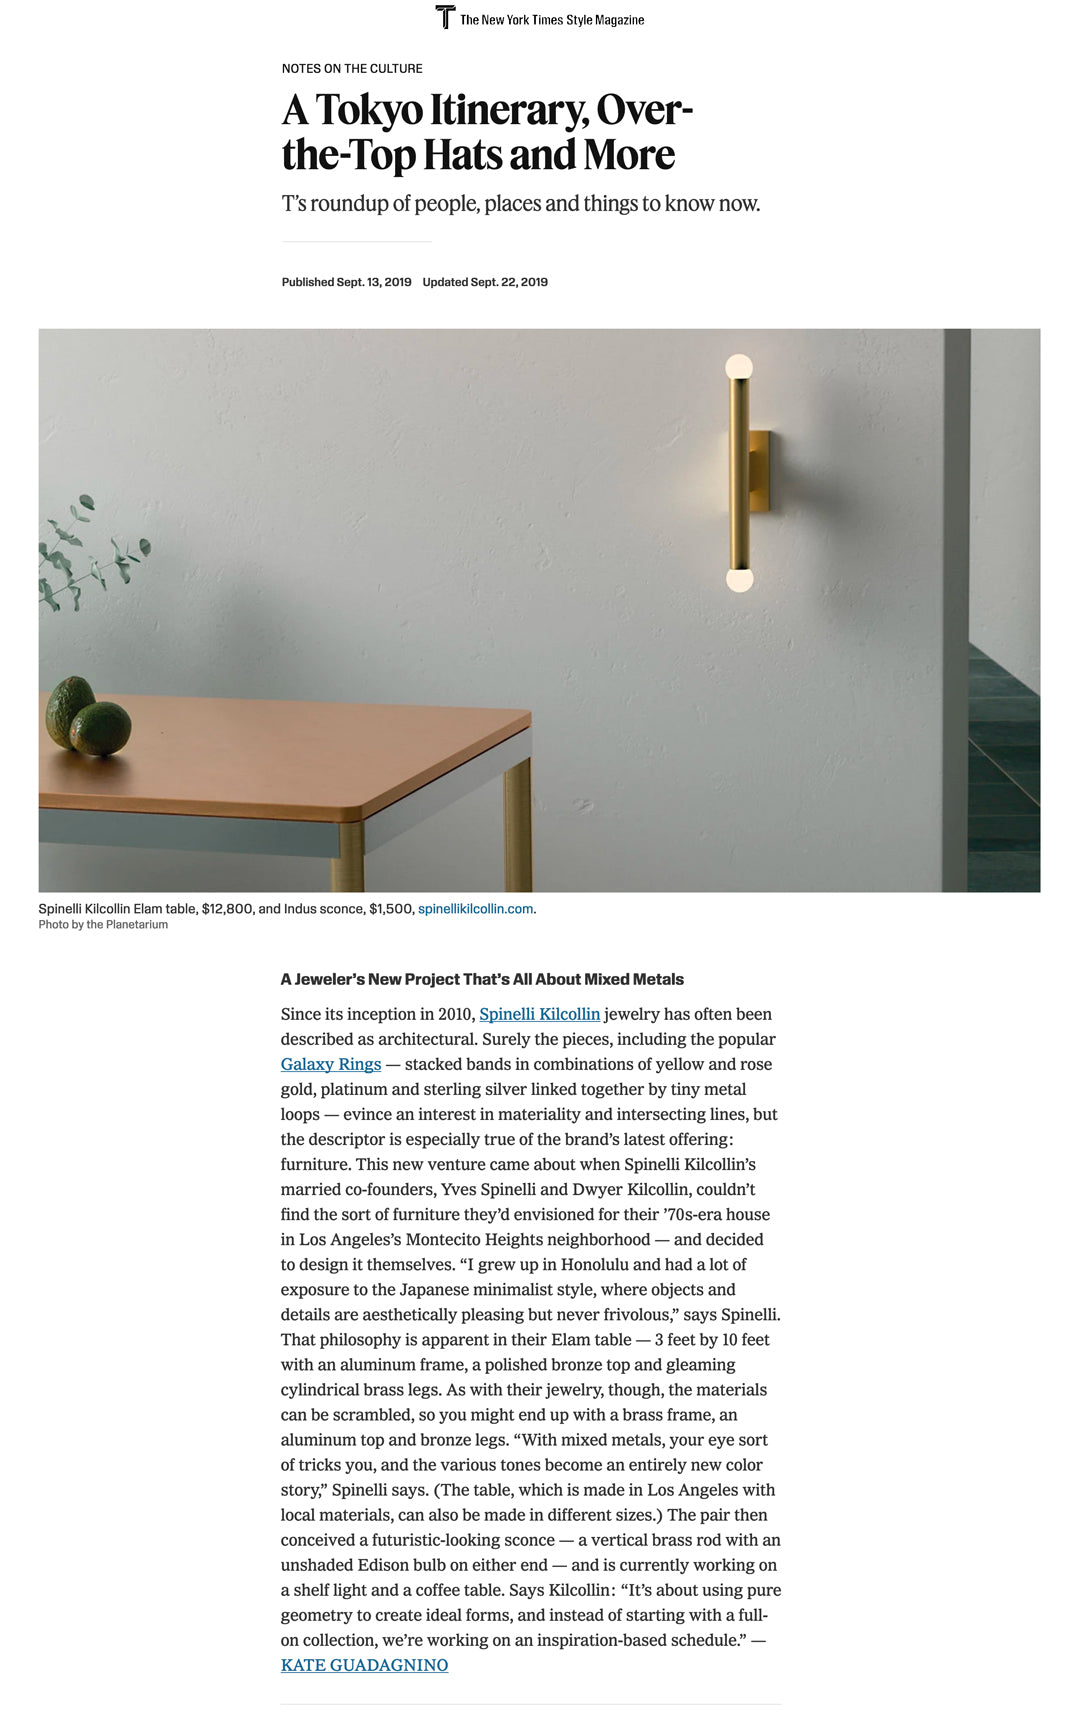 spinelli kilcolling new york times t style magazine elam table sconce indus luxury-brand luxury-table luxury-sconce mixed-metals